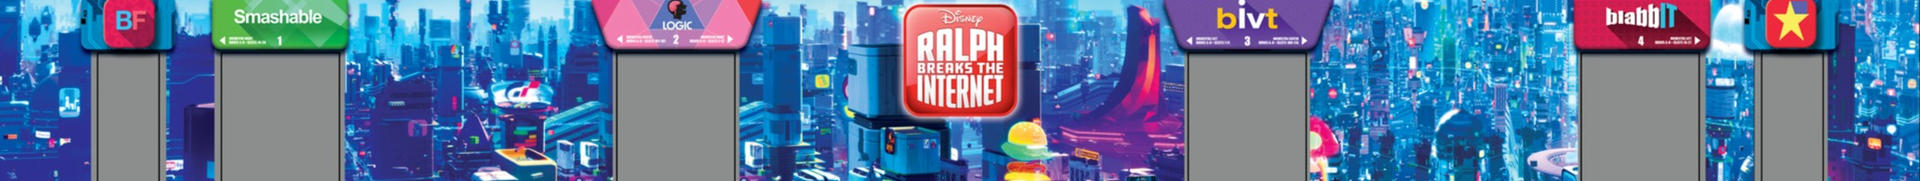 Ralph Breaks the Internet Mural Design